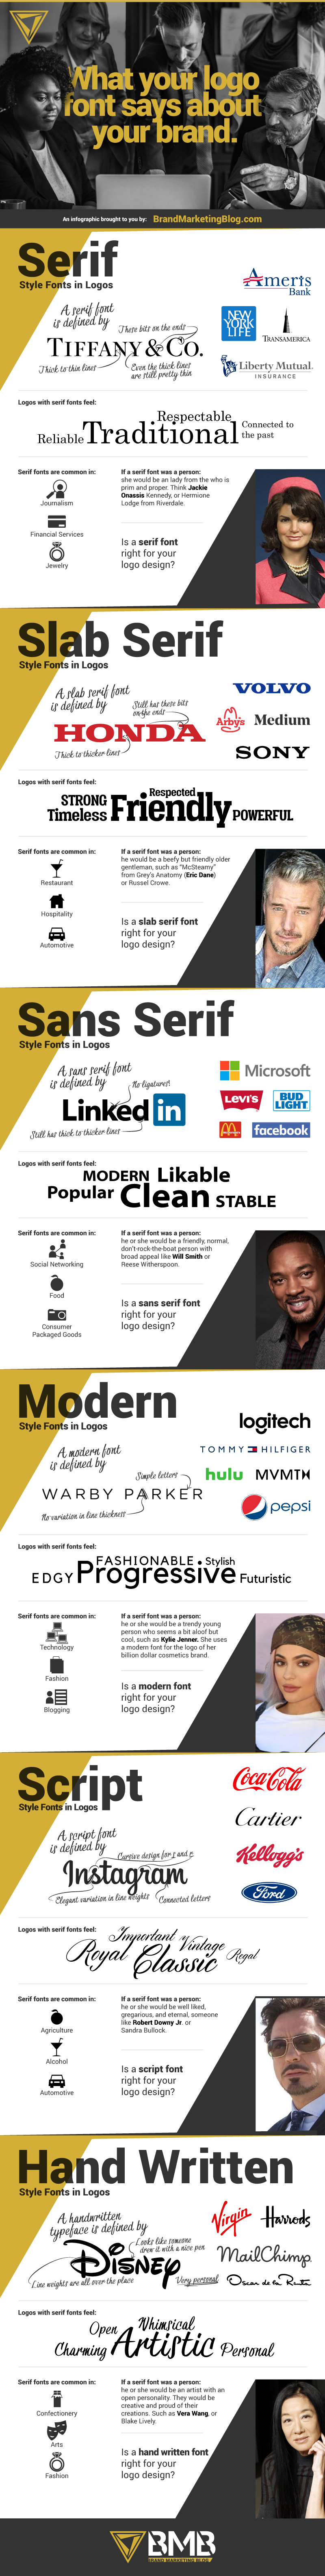 Infographic: What the font type in your logo says about your brand. Serif, slab serif logo, sans serif logo, script logo, modern font logo, handwritten logo